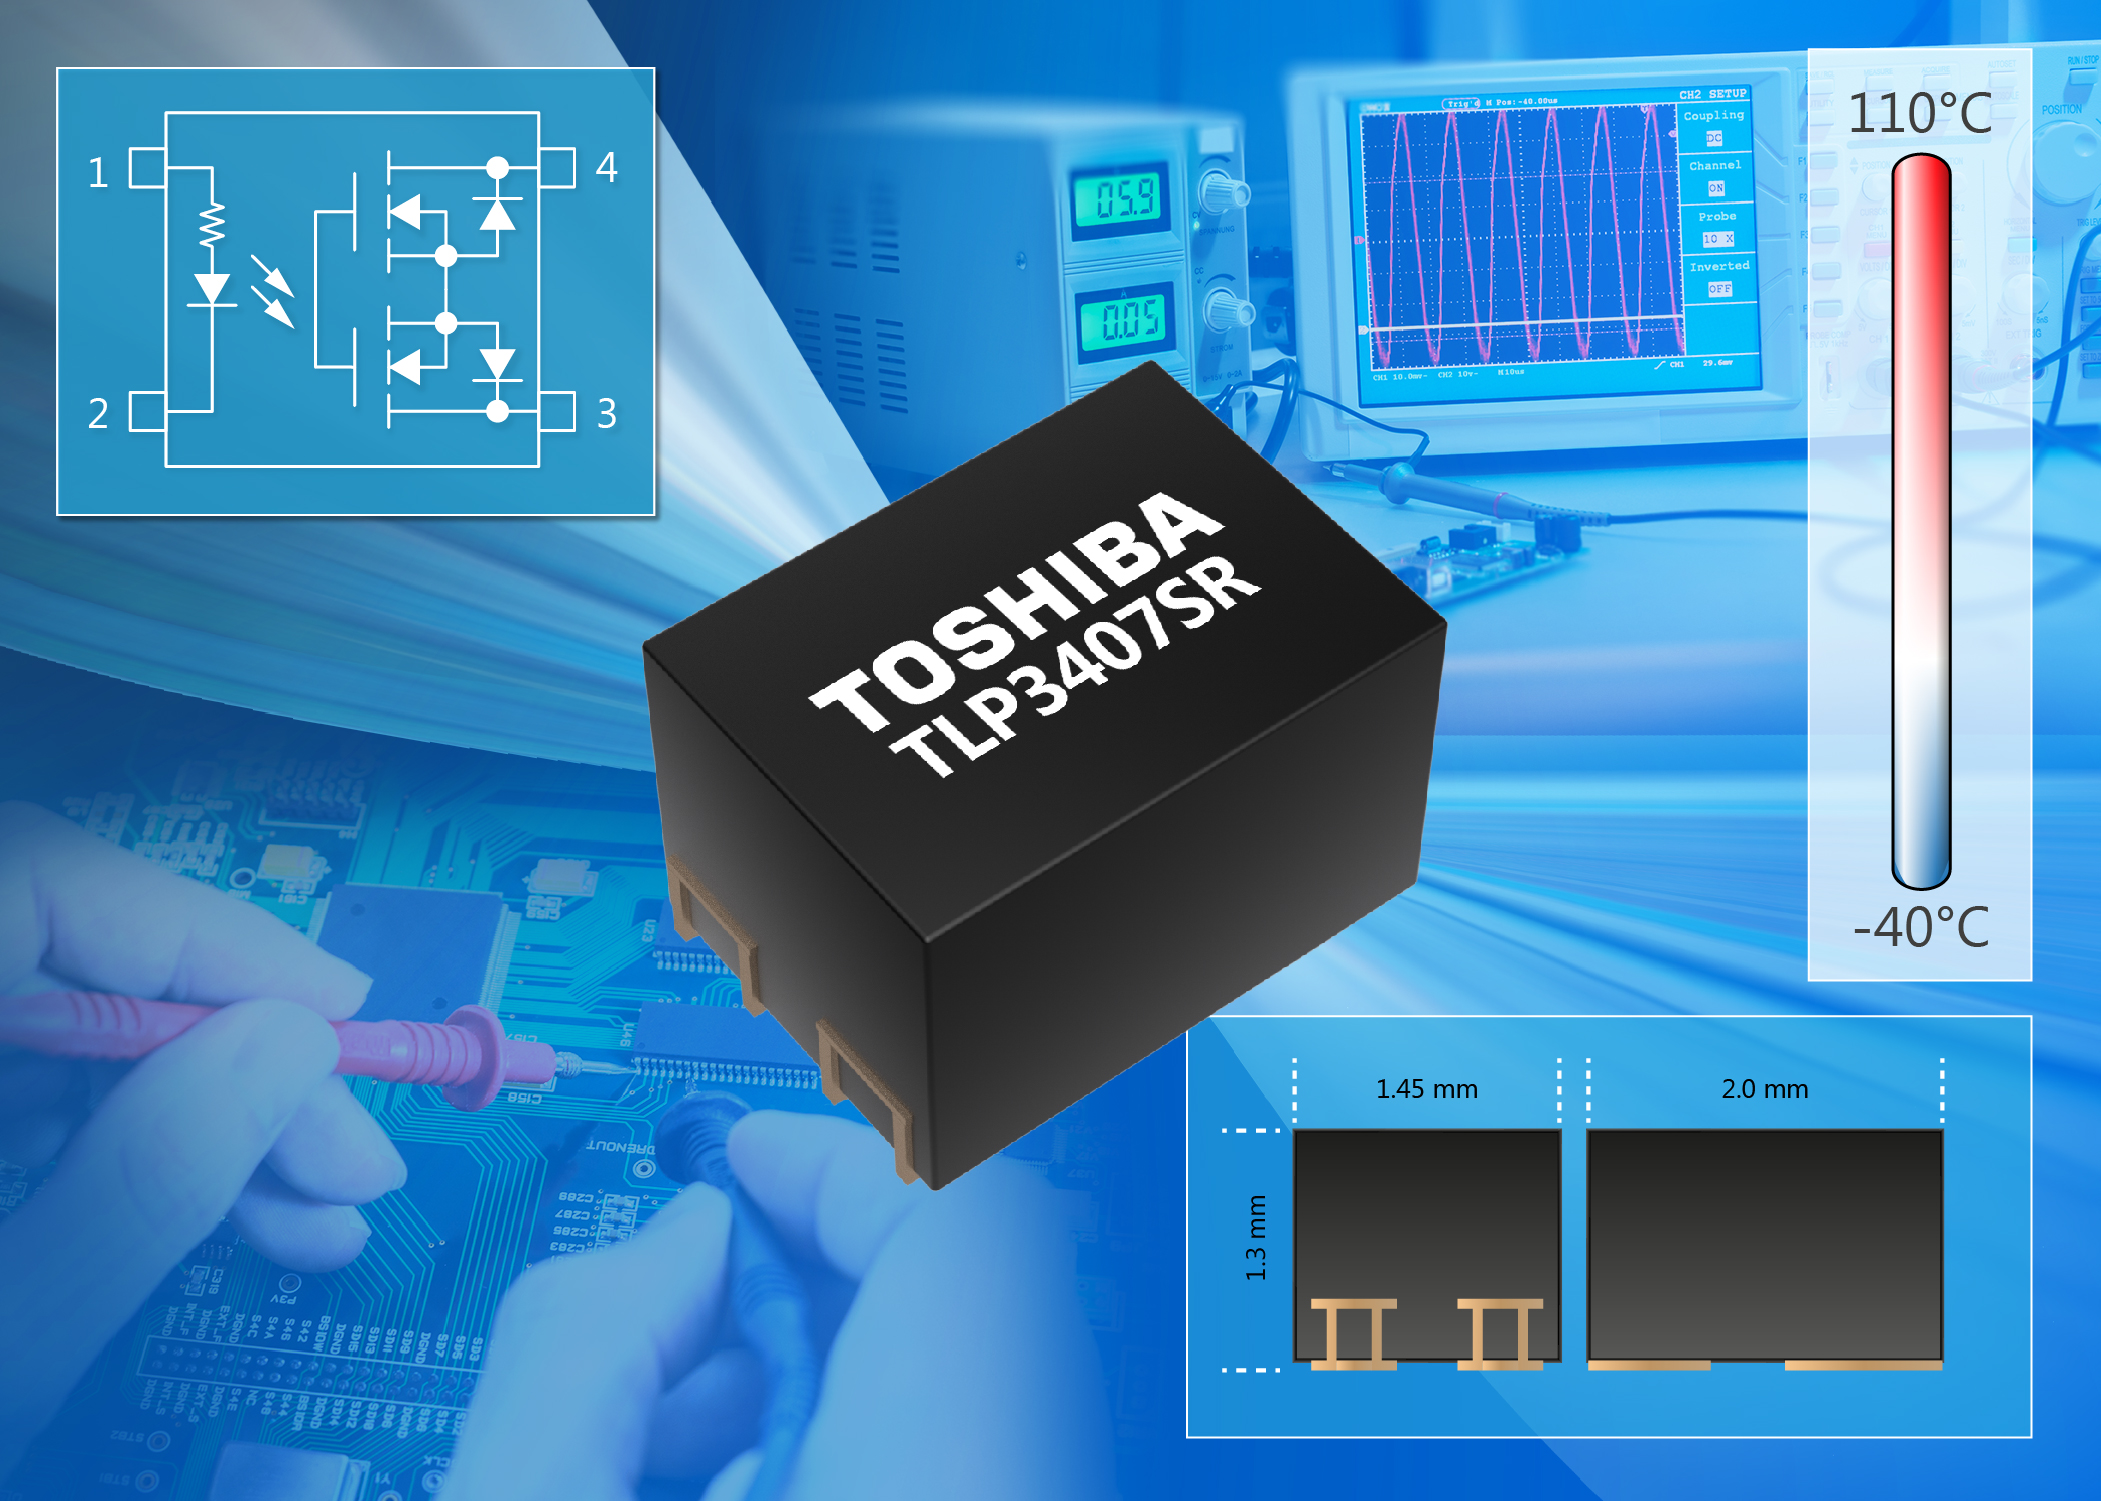 Toshiba Launches Voltage Drive Photorelay with a Tiny 2.9mm2 Footprint